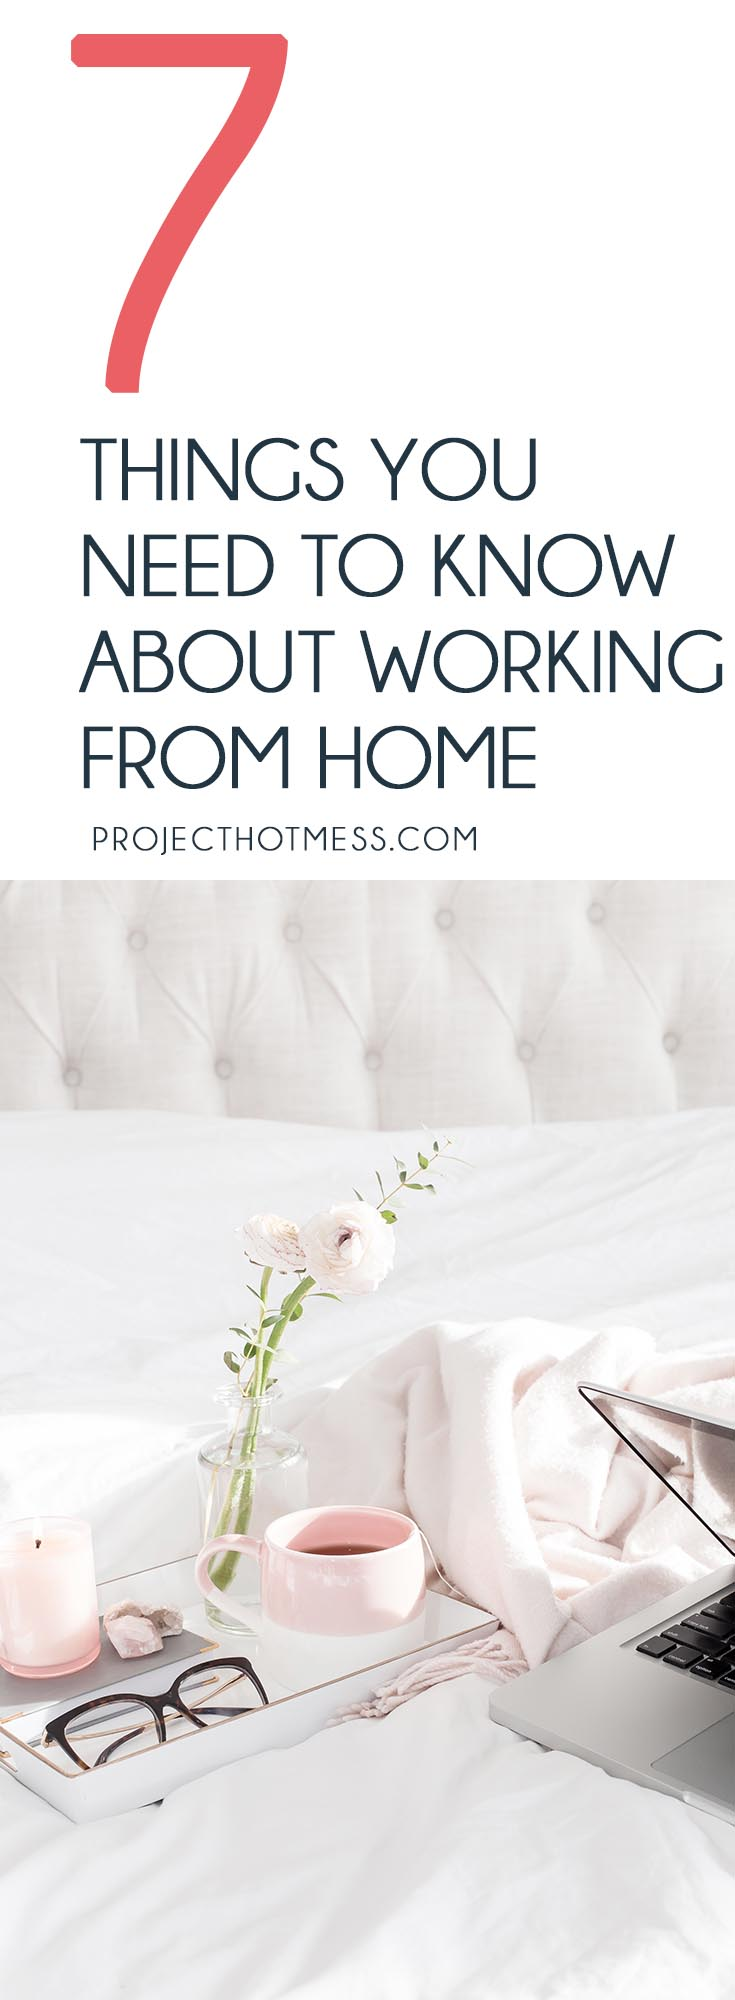 Working in your pyjamas sound like the dream job? While it does sound pretty darn awesome, there are some things you need to know about working from home. Work at Home | WAHM | Entrepreneur | Blogging Tips | Entrepreneur Tips | Business Owner | Productivity | Time Management | How To Work From Home | Work From Home Full Time